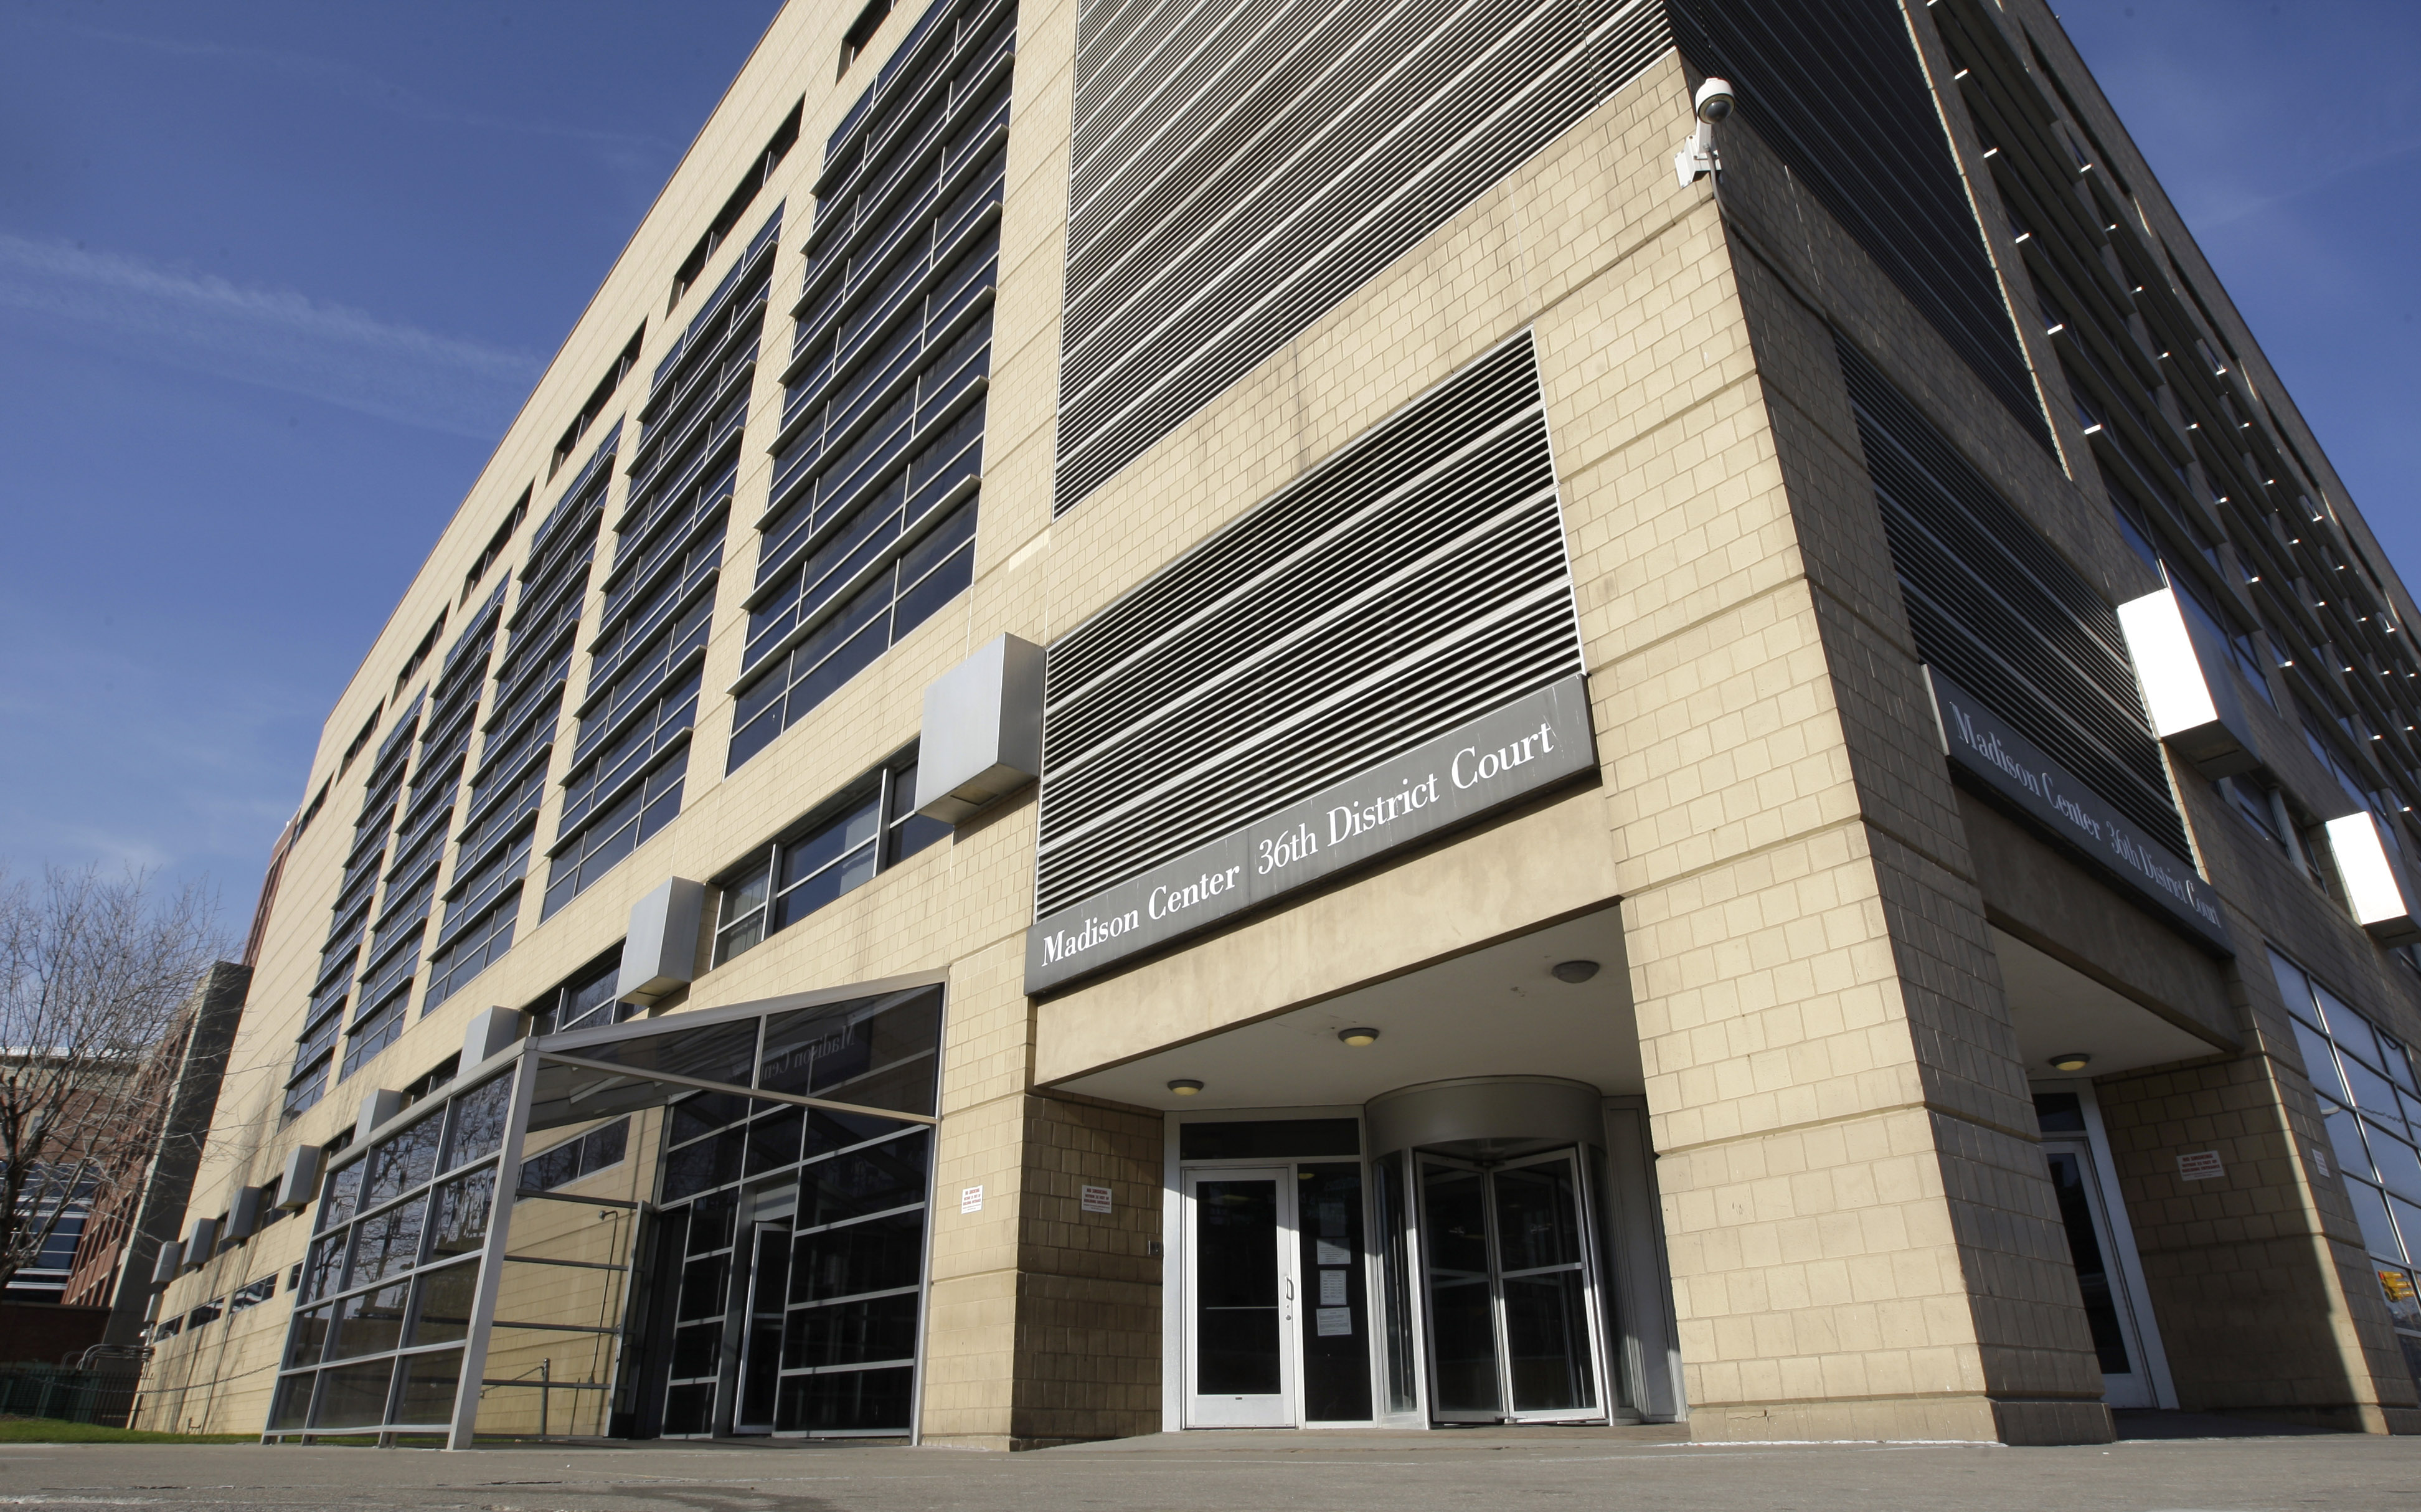 """A tall white brick and glass building. A narrow gray sign over a revolving door reads """"Madison Center 36th District Court."""""""